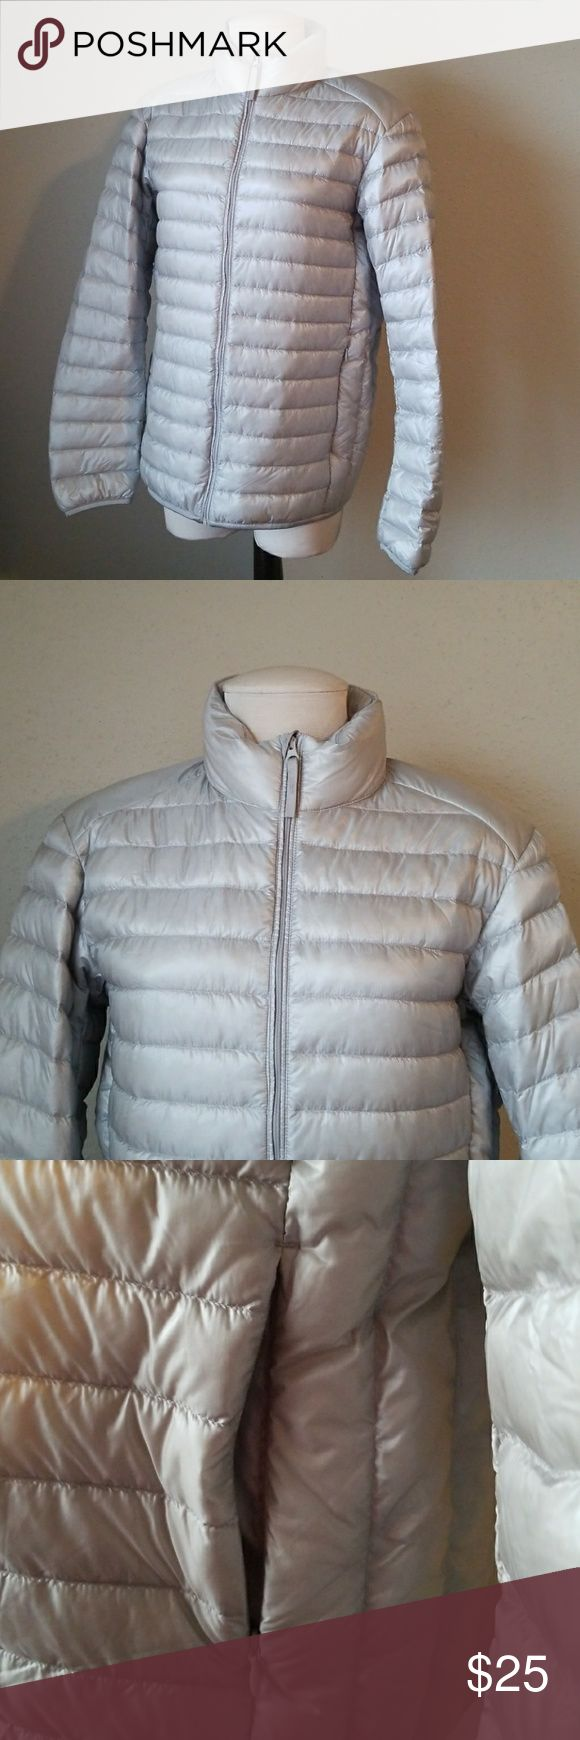 UNIQLO • SIZE M This Jacket it's very convient, it was a bag attached Uniqlo Jackets & Coats Utility Jackets